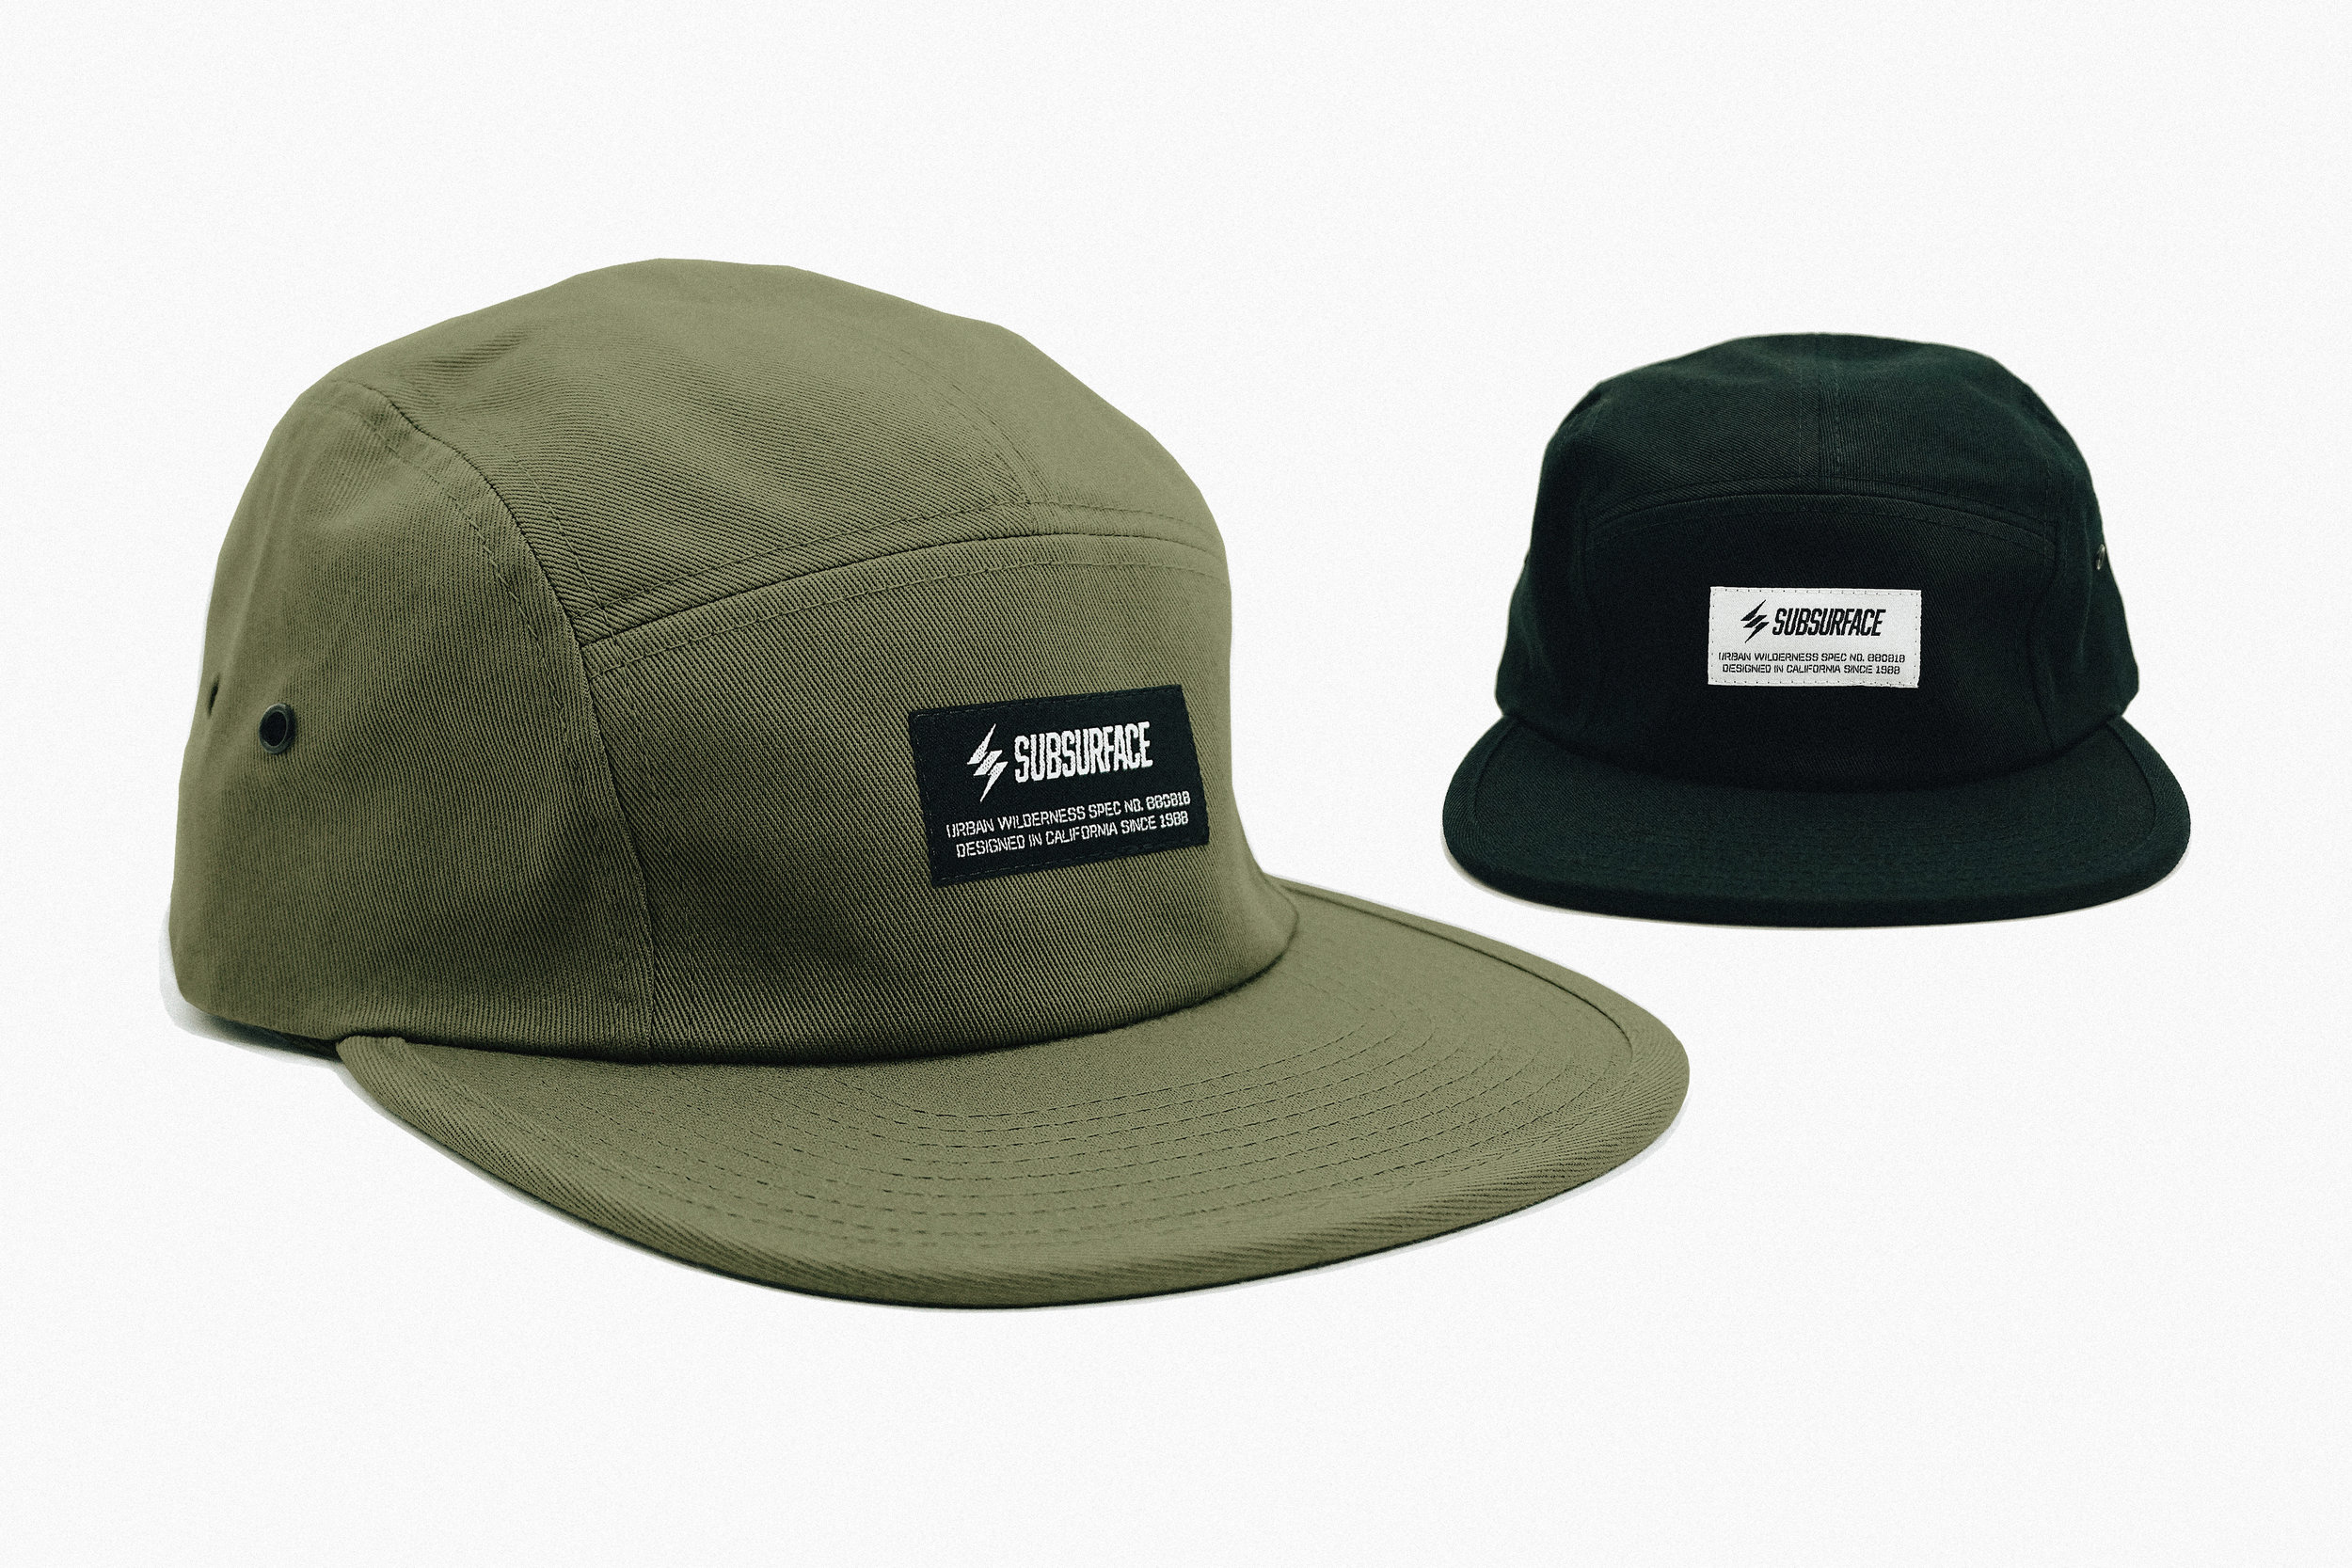 The Camper Hat - [SKU #SUB00011] - Unstructured 5 Panel Crown with Signature Woven Labels / Low Profile Camper Style / Flat Visor / Adjustable Nylon Clip Closure / One Size Fits All / 100% Cotton